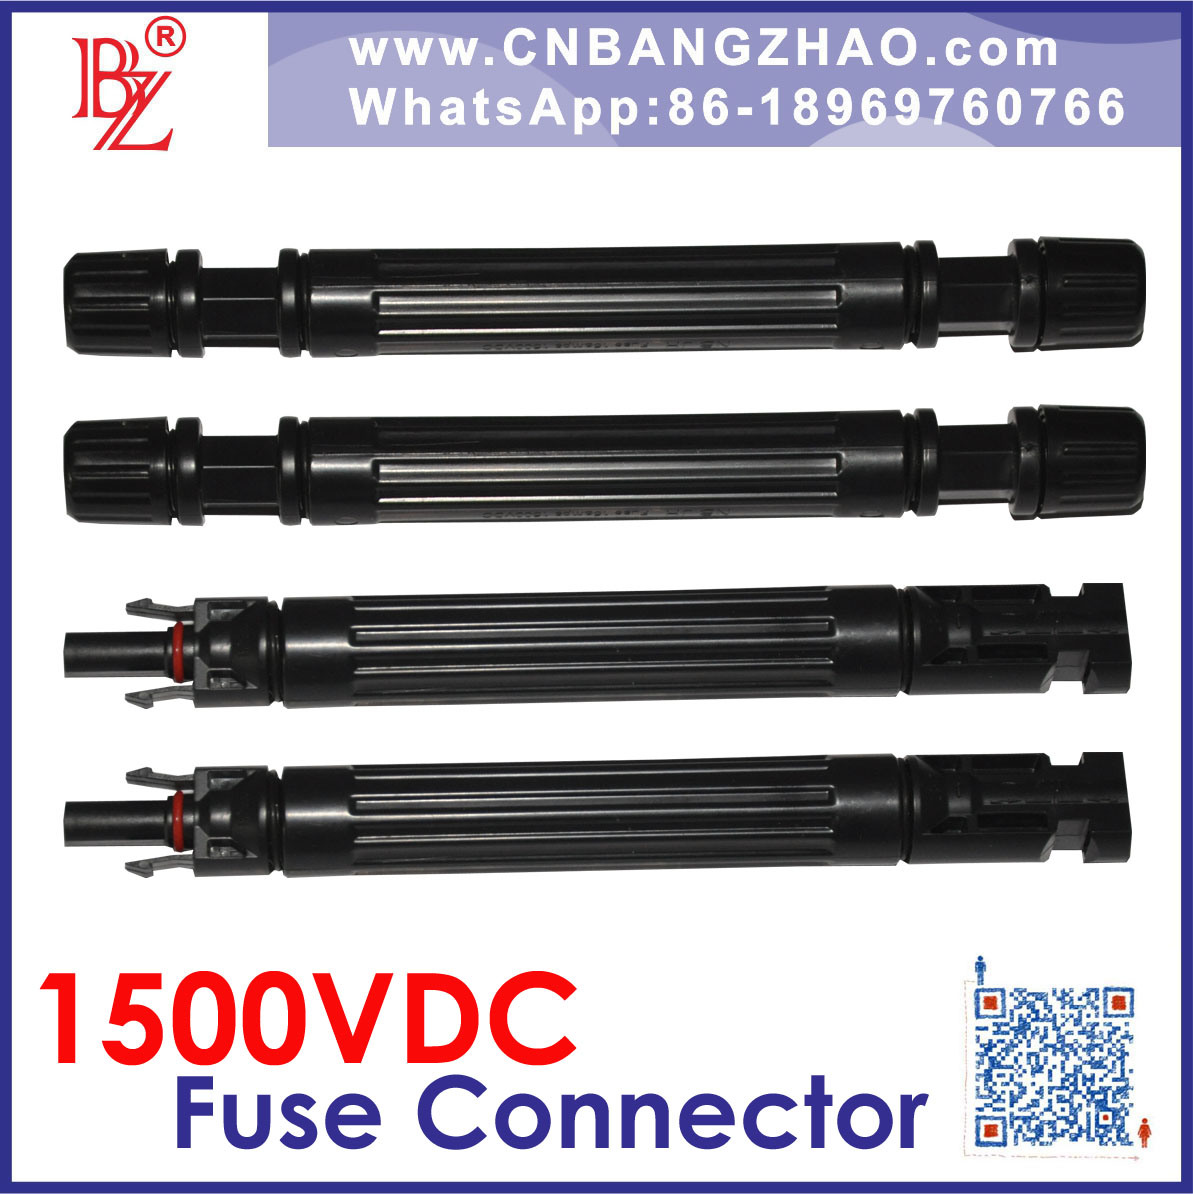 Factory Customize 1500VDC PV Cable Connector-1500VDC Fuse Connector Harness